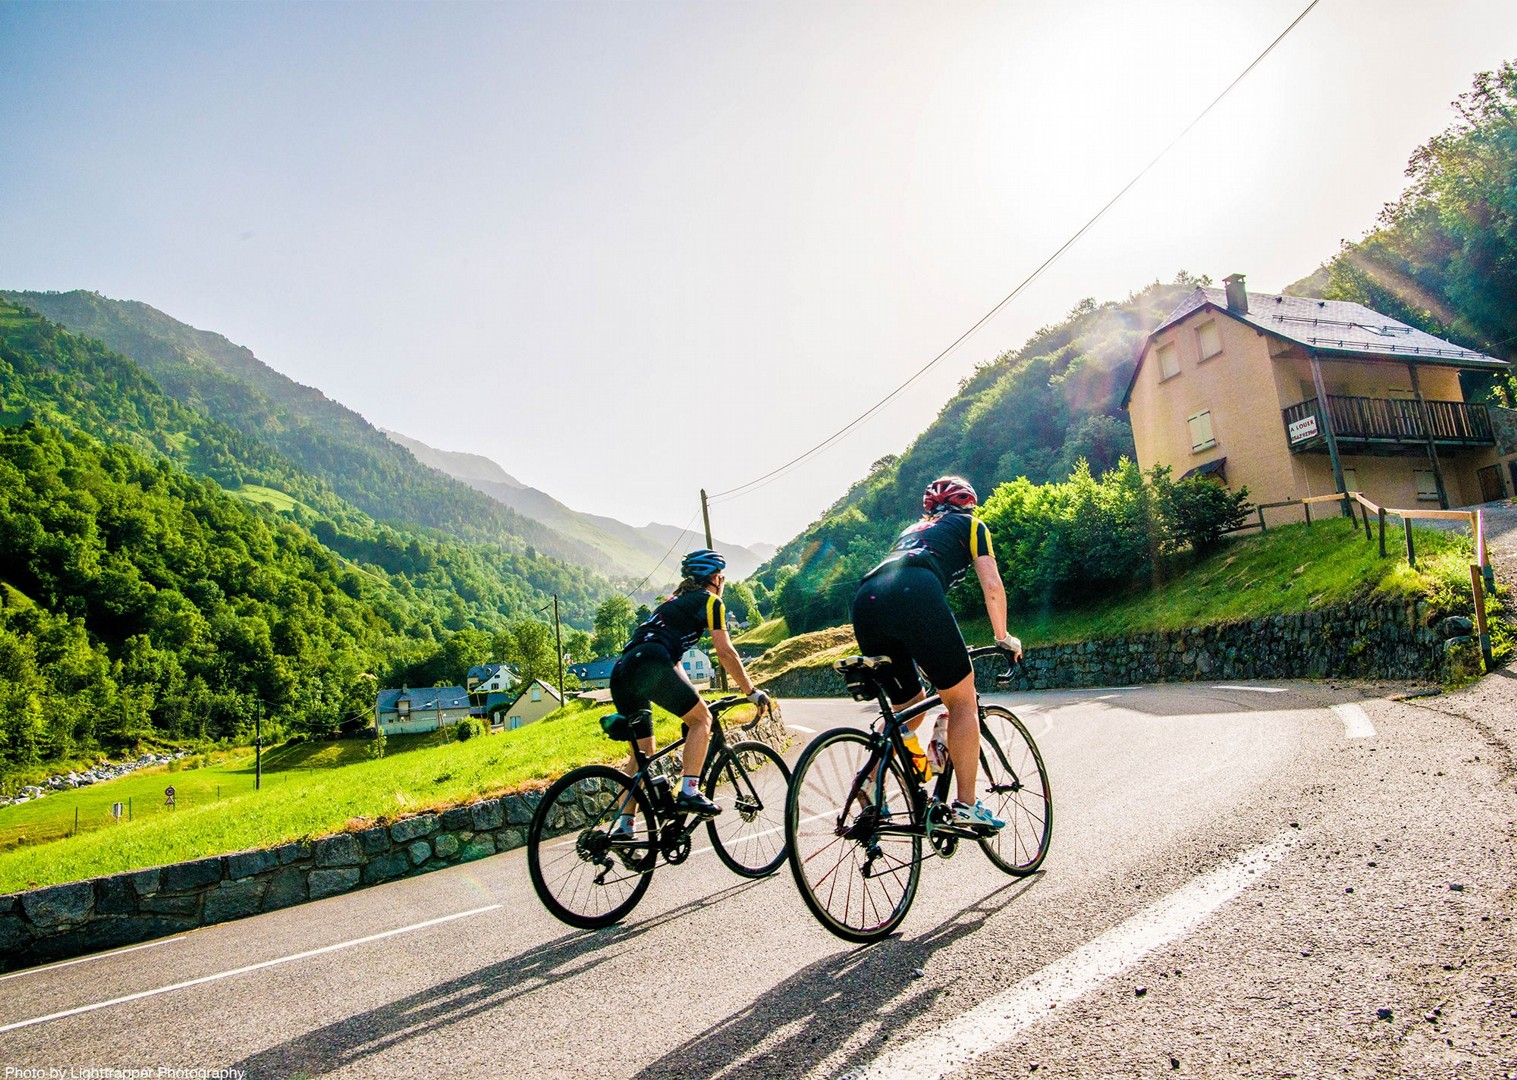 cycling-in-france-french-mountain-range.jpg - France - Trans Pyrenees Challenge - Guided Road Cycling Holiday - Road Cycling